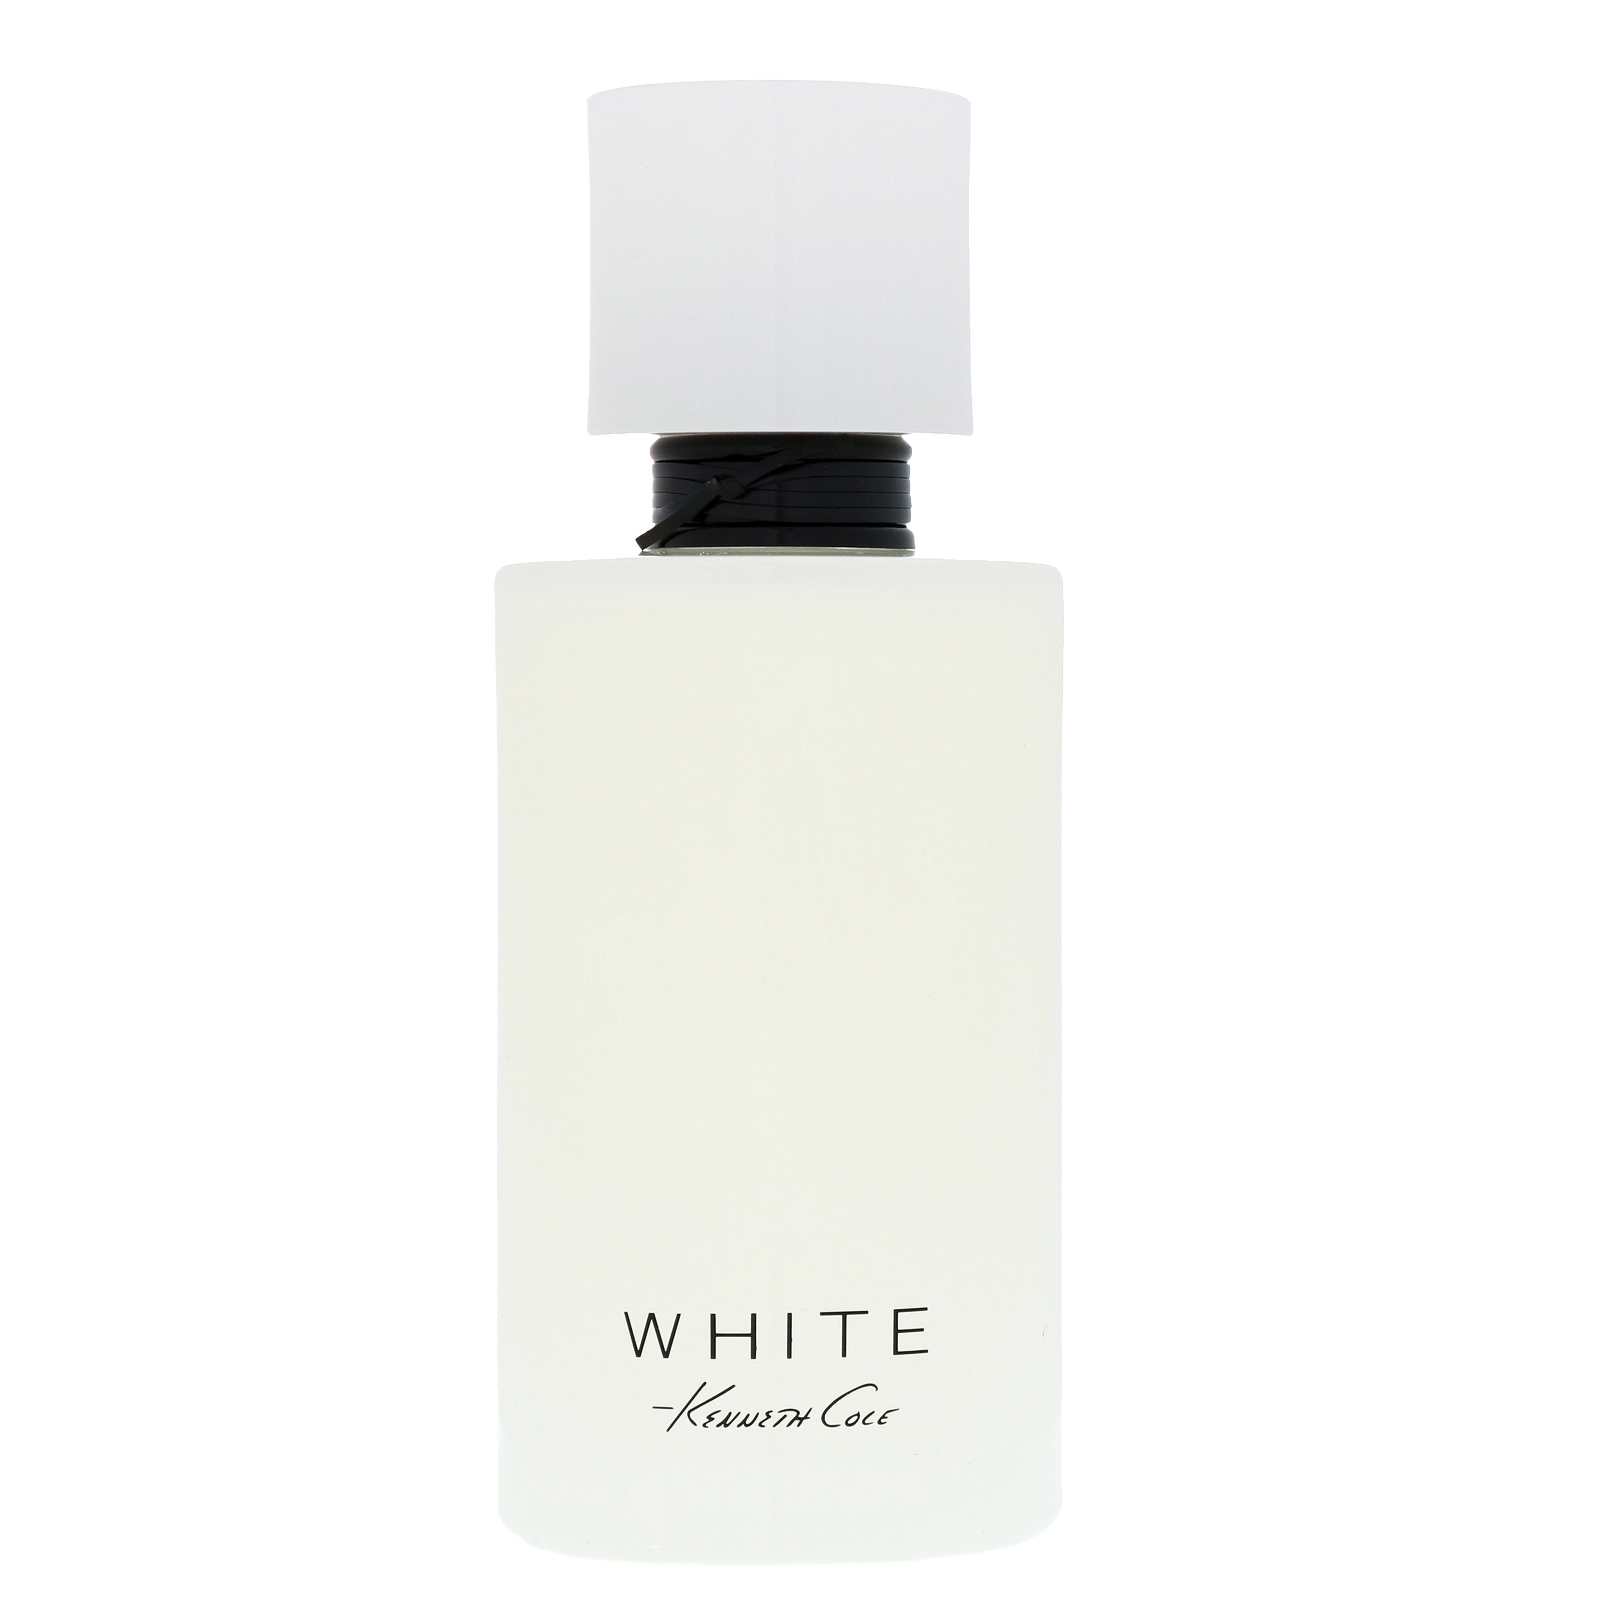 Kenneth Cole White Eau de Parfum Spray 100ml